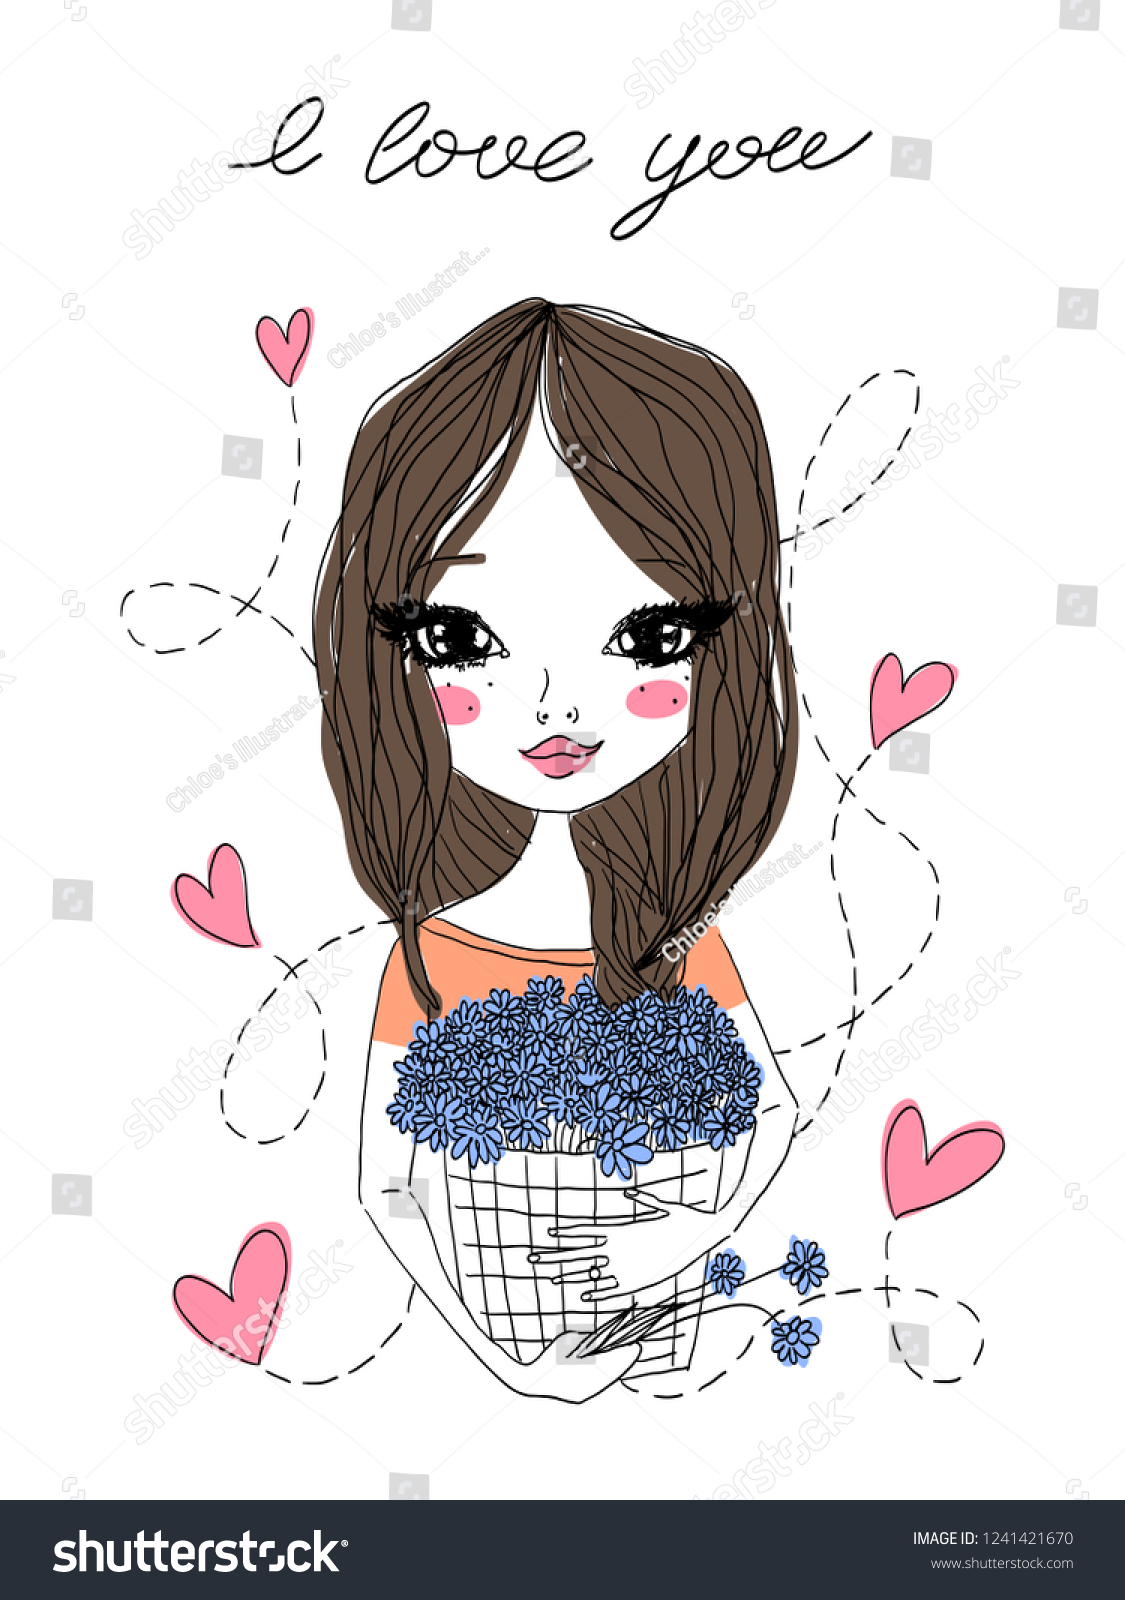 stock-photo-colorful-cute-fashion-illust